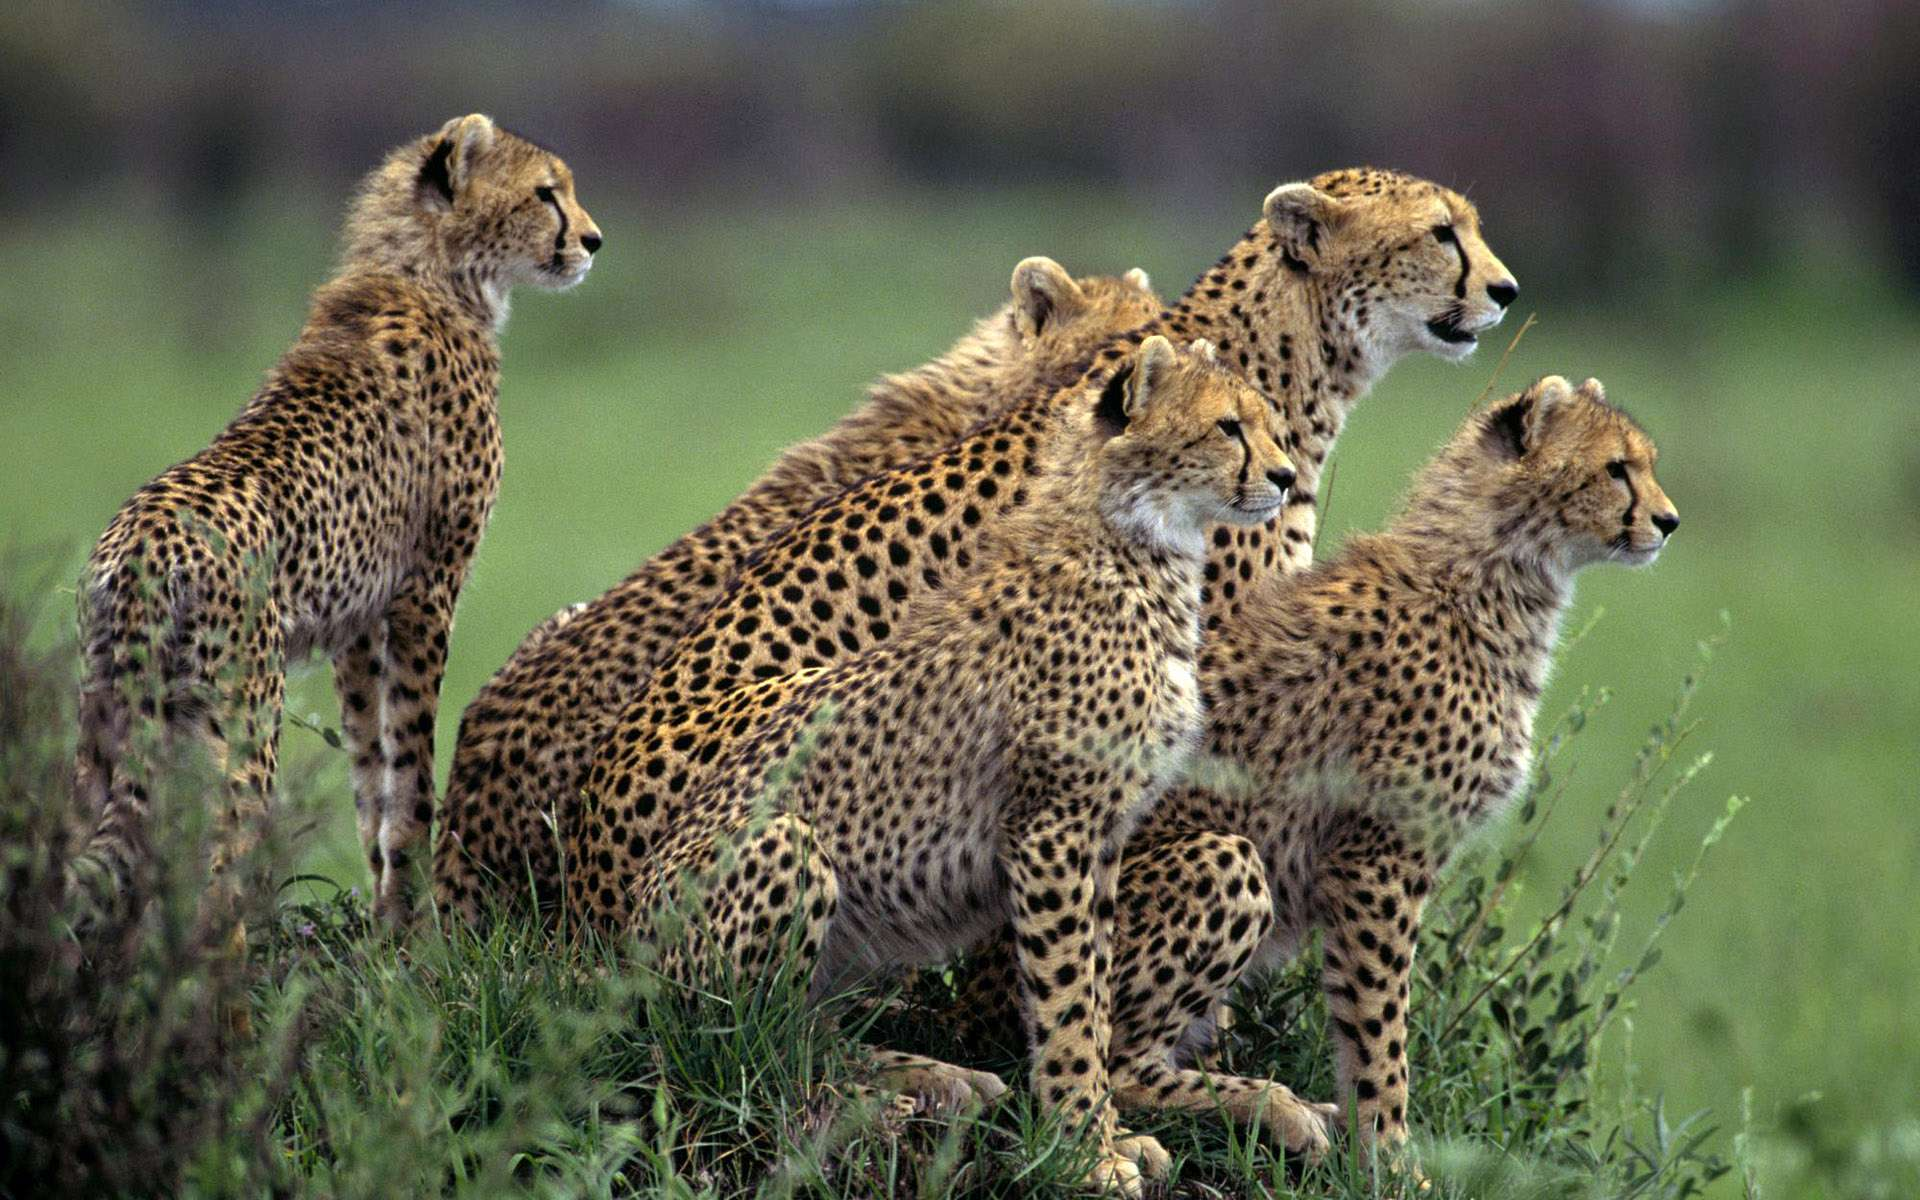 The Cheetah Orphans Download Wallpaper Nature 1024x786PX ...